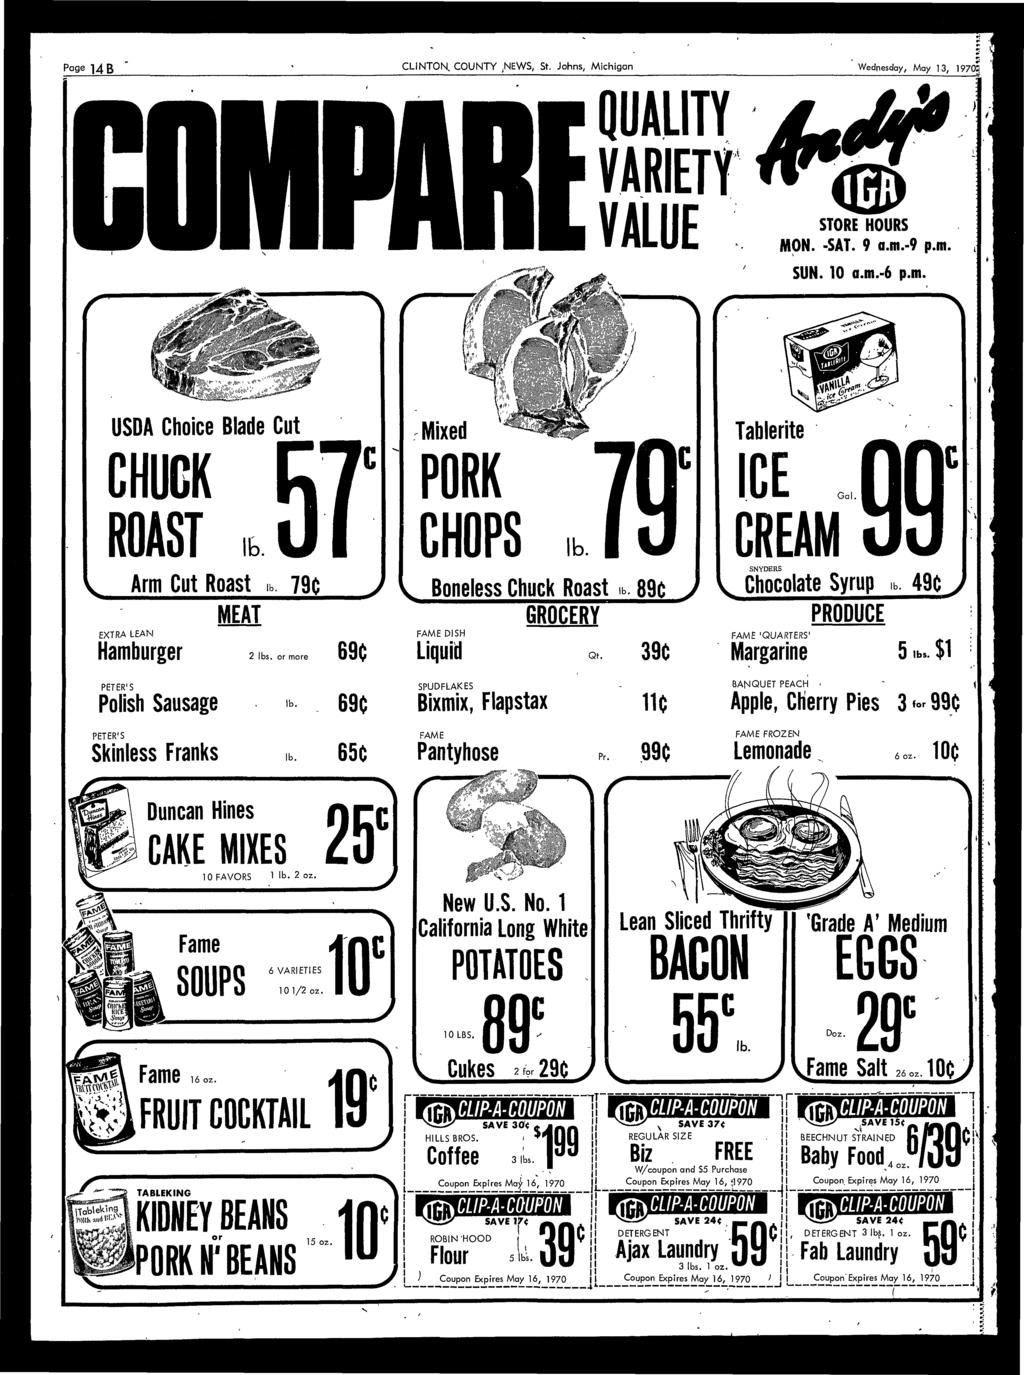 Page ]4 f$ CLINTON, COUNTY.NEWS, St. Johns, Michigan Wednesday, May, 197o QUALITY VARIETY A <m STORE HOURS MON. -SAT. 9 a.m.-9 p.m. * # SUN. a.m.-6 p.m. lb. Tahlerite ICE CREAM SNYDERS lb.